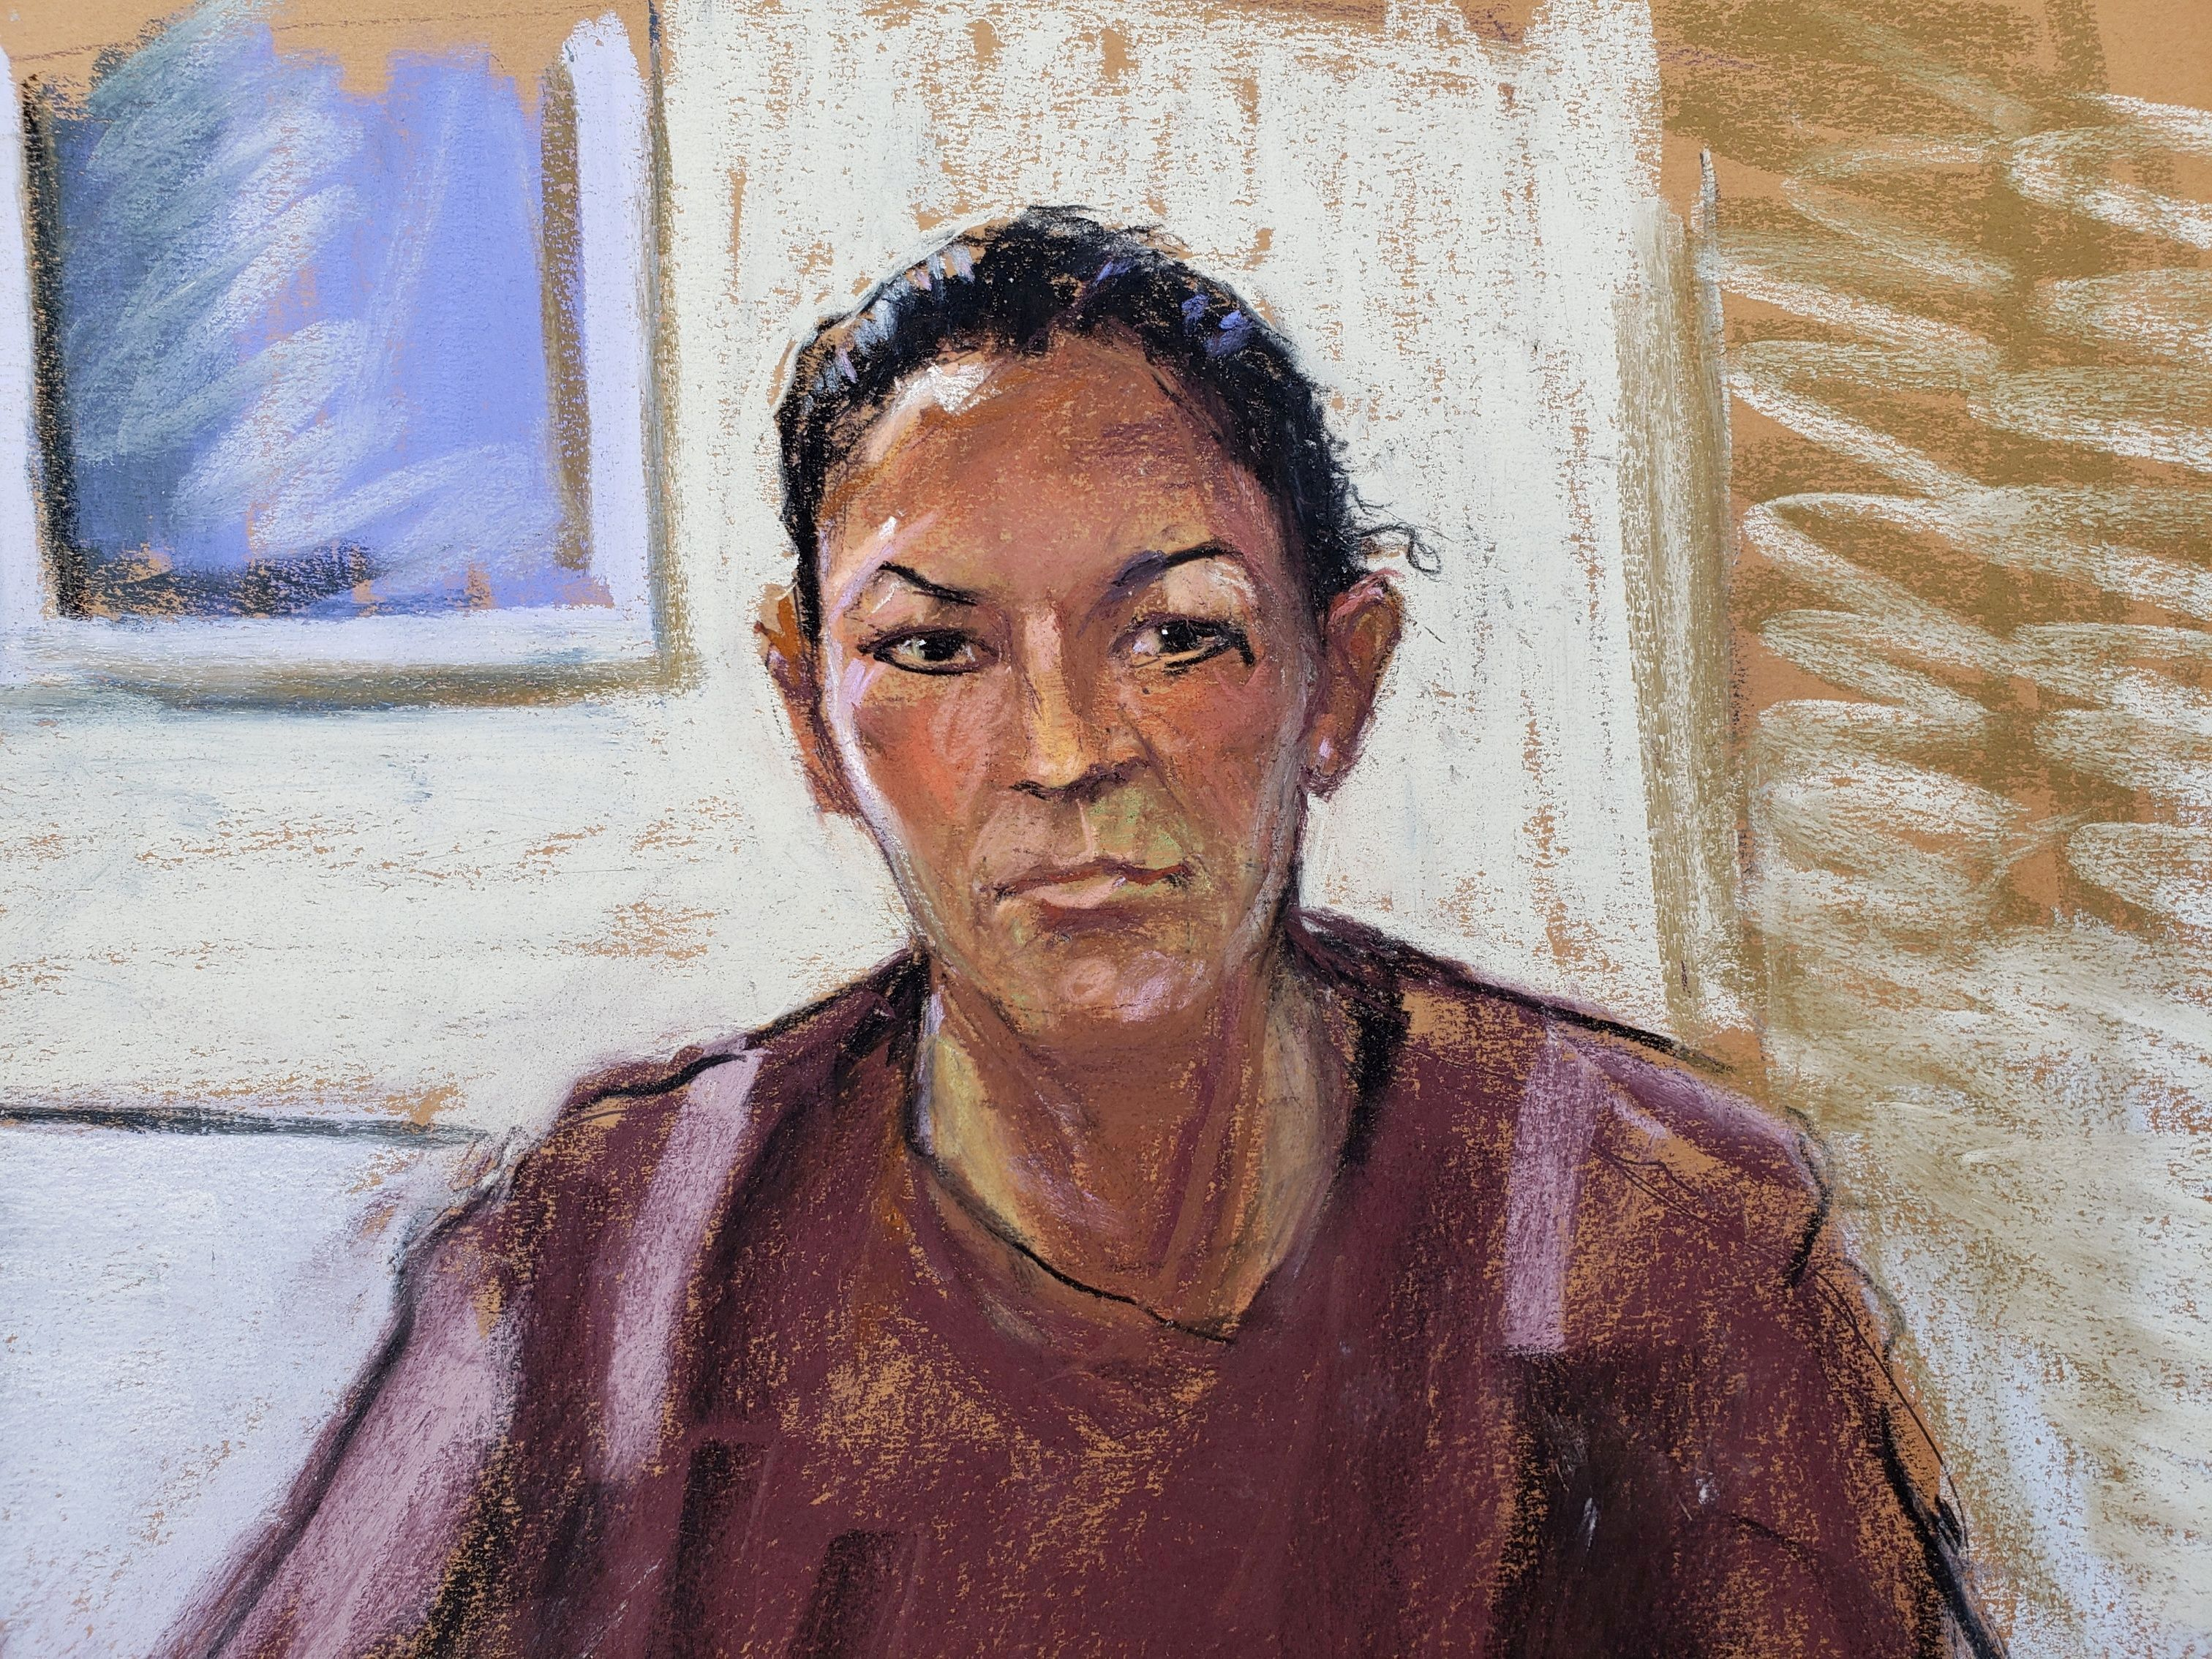 Ghislaine Maxwell appears via video link during her arraignment hearing where she was denied bail for her alleged role aiding Jeffrey Epstein to recruit and eventually abuse of minor girls, in Manhattan Federal Court, in the Manhattan borough of New York City, New York, U.S. July 14, 2020 in this courtroom sketch. REUTERS/Jane Rosenberg/File Photo